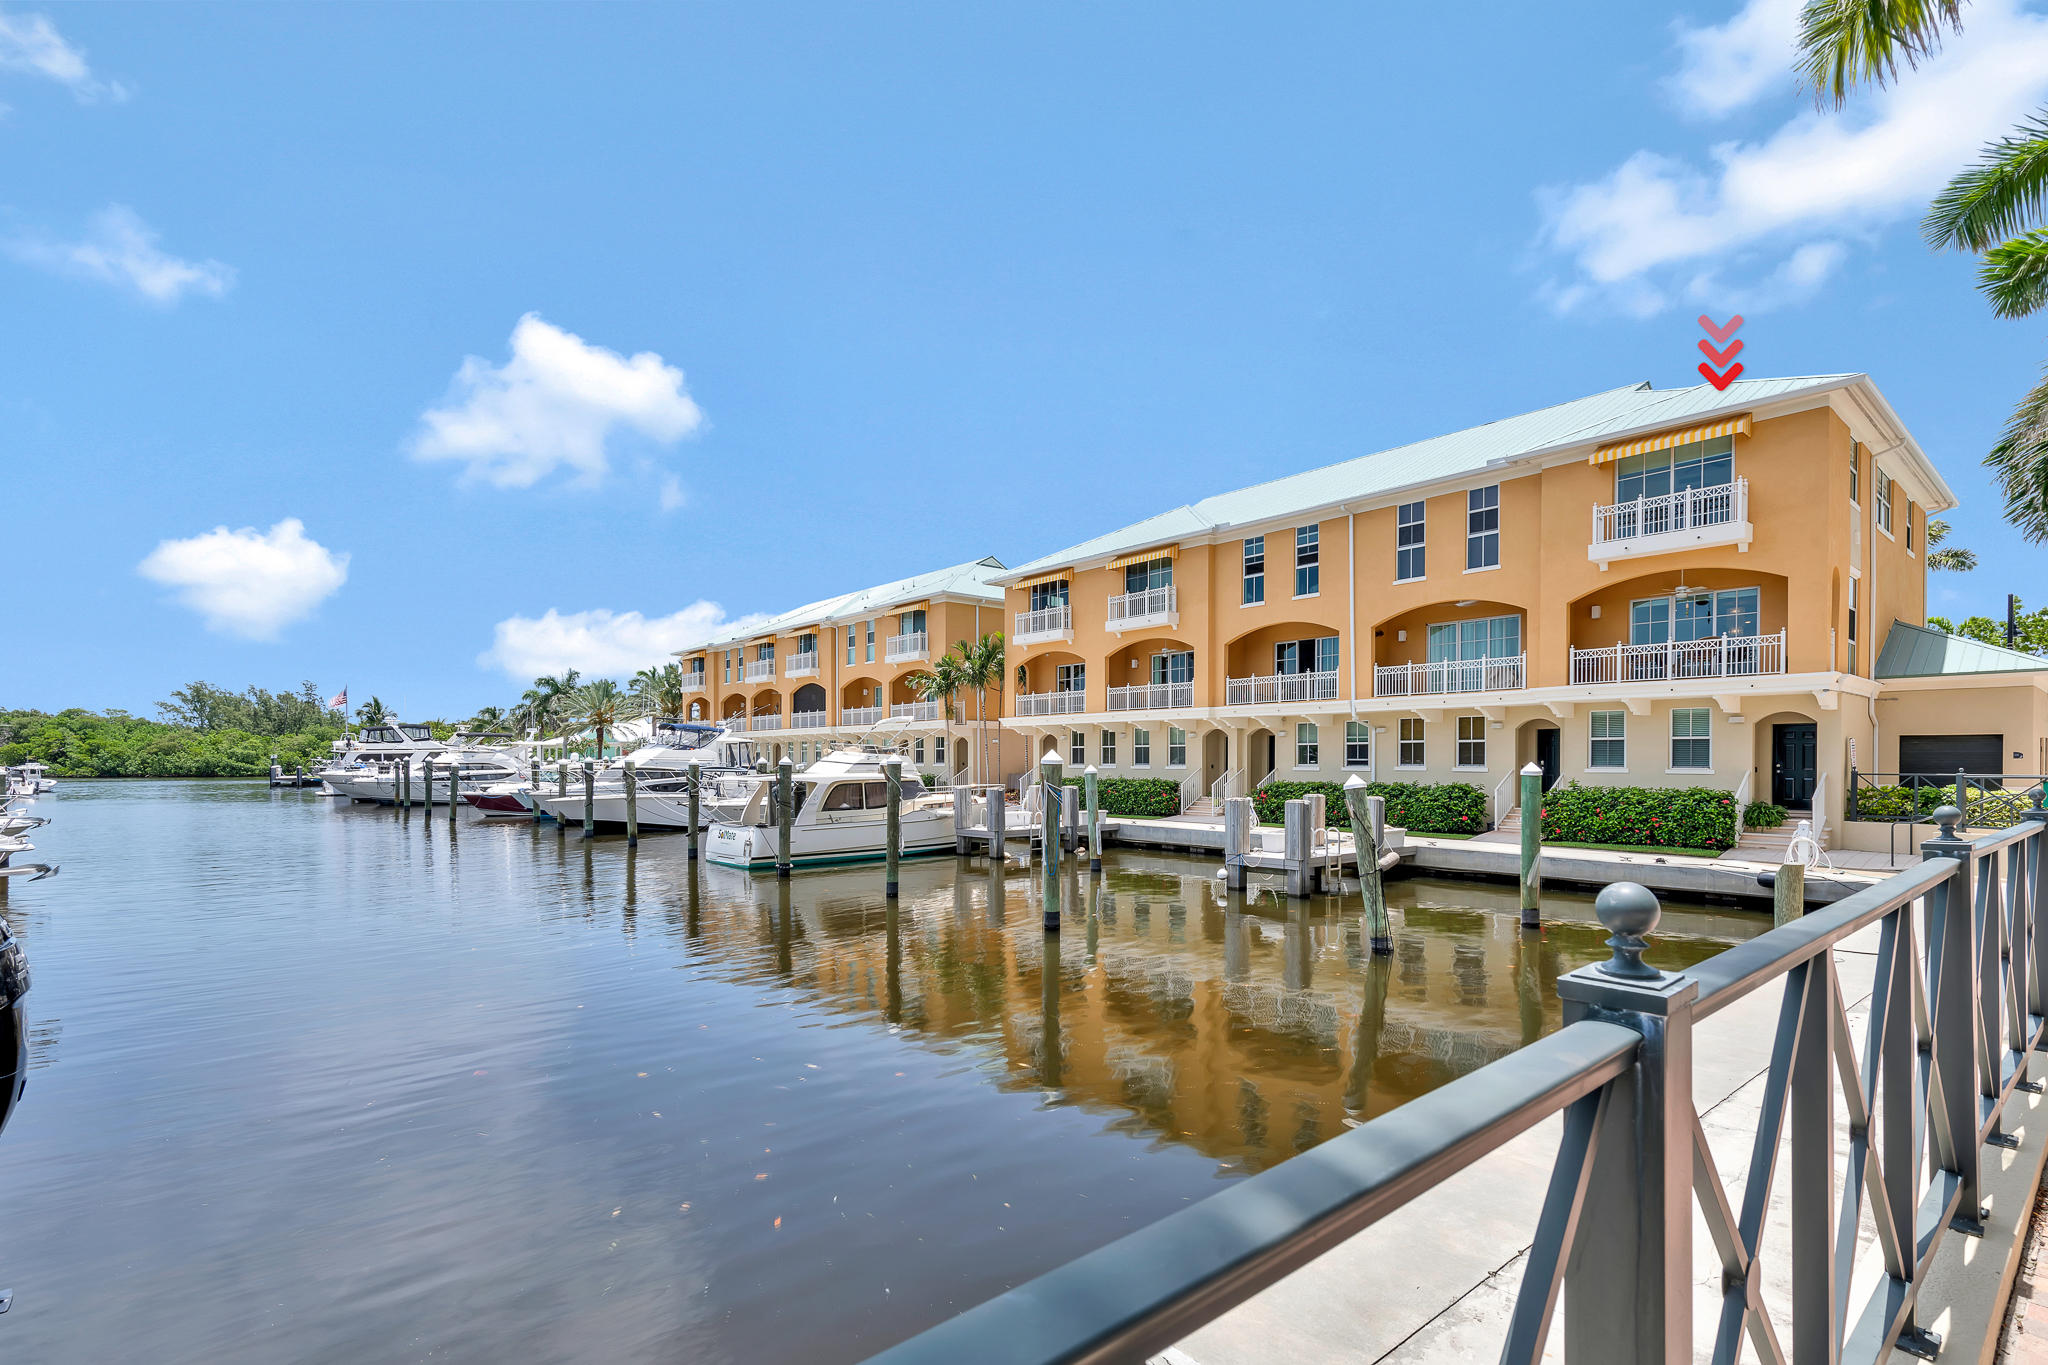 MARINA VILLAGE BOYNTON BEACH REAL ESTATE